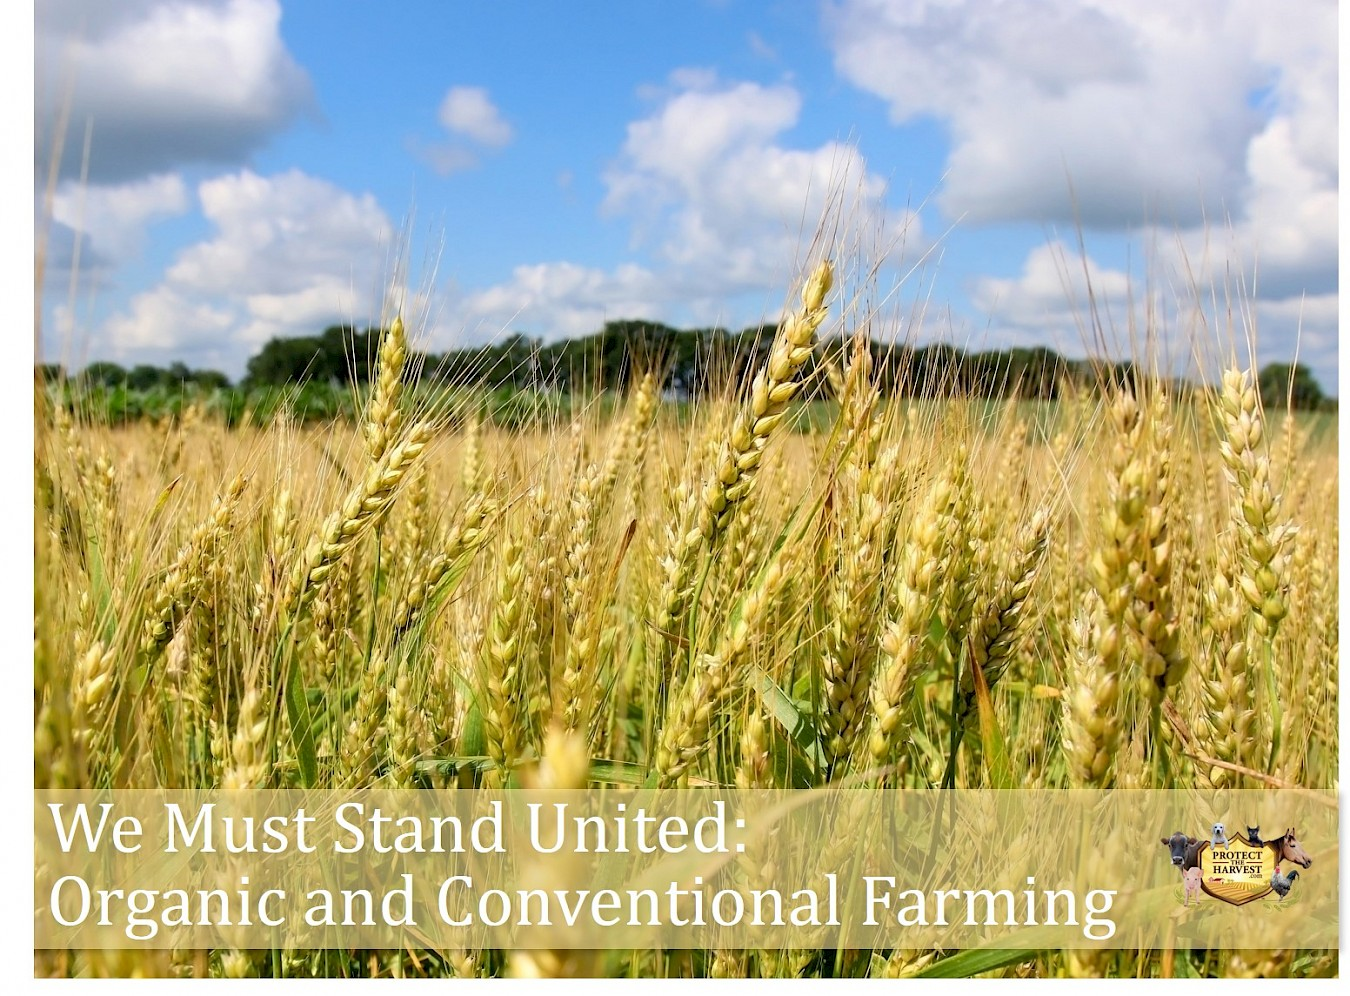 We Must Stand United - Organic and Conventional Farming